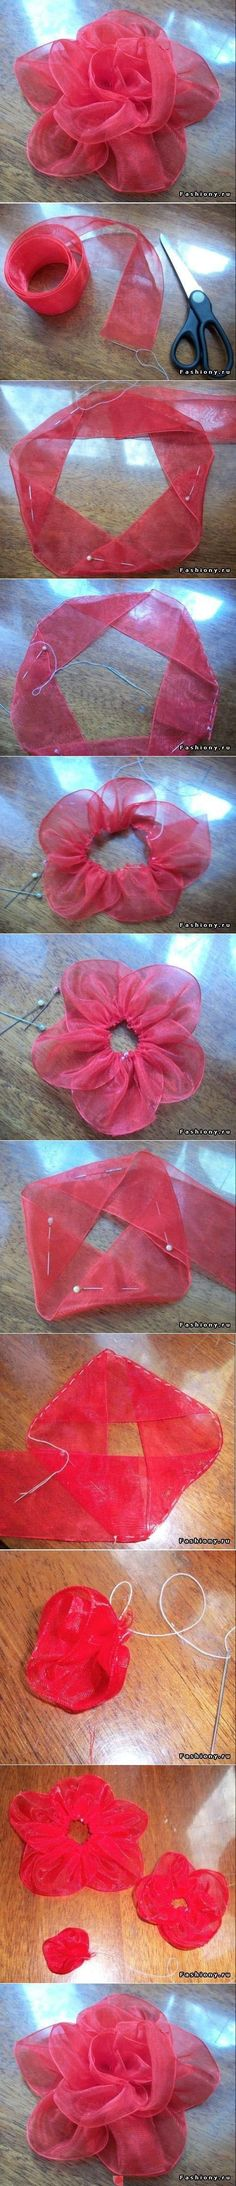 DIY Ribbon Tape Flower Tutorial in pictures Ribbon Art, Fabric Ribbon, Ribbon Crafts, Flower Crafts, Fabric Crafts, Sewing Crafts, Ribbon Rose, Organza Ribbon, Tulle Fabric